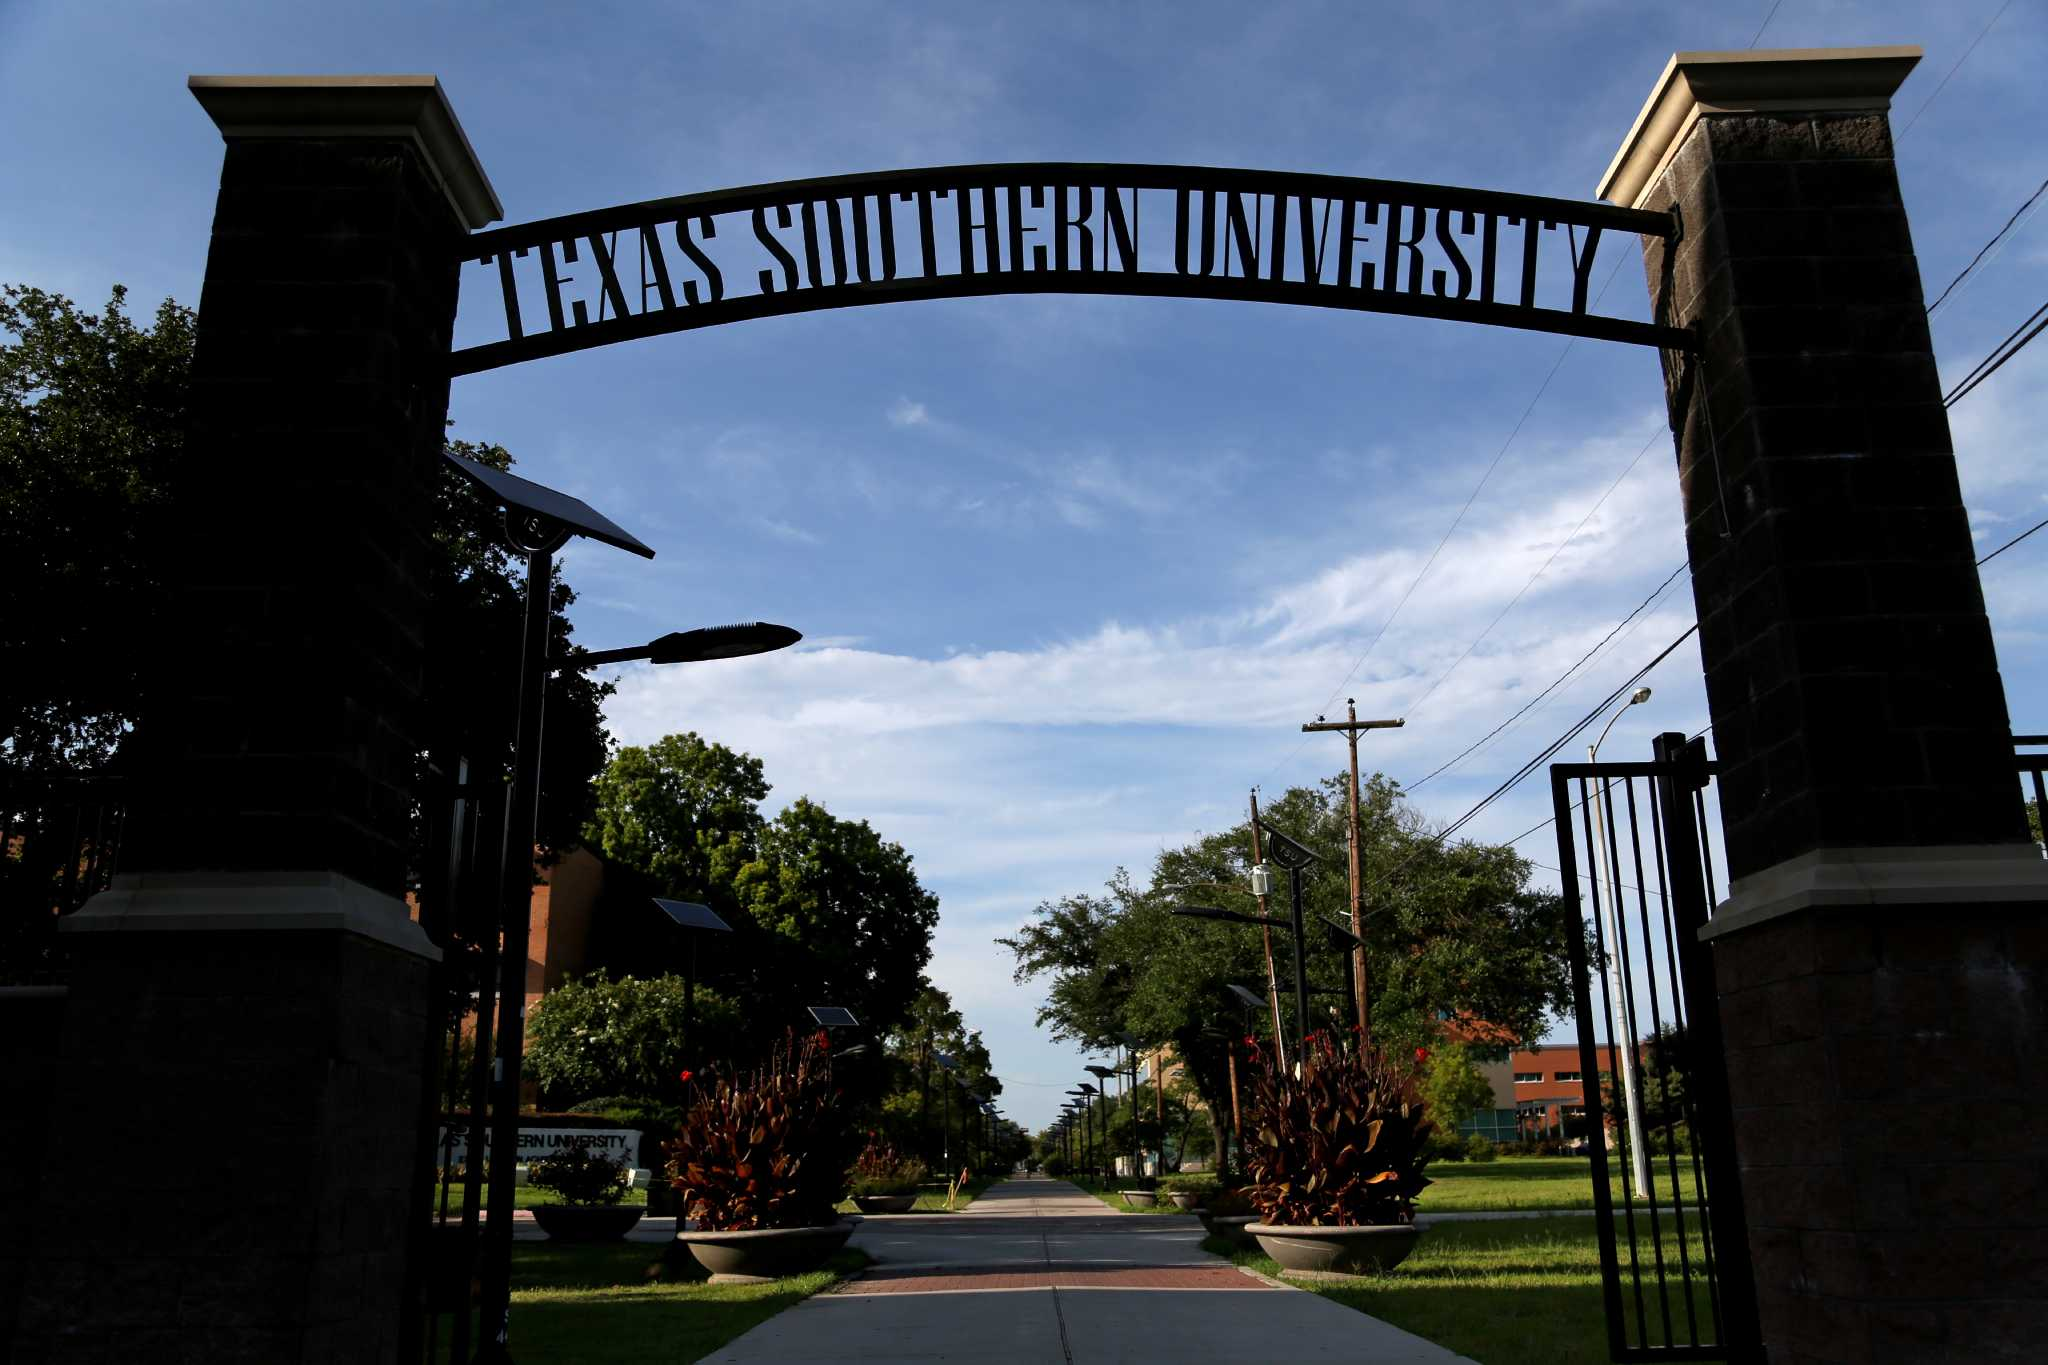 'Improprieties' within TSU admissions under investigation - Chron